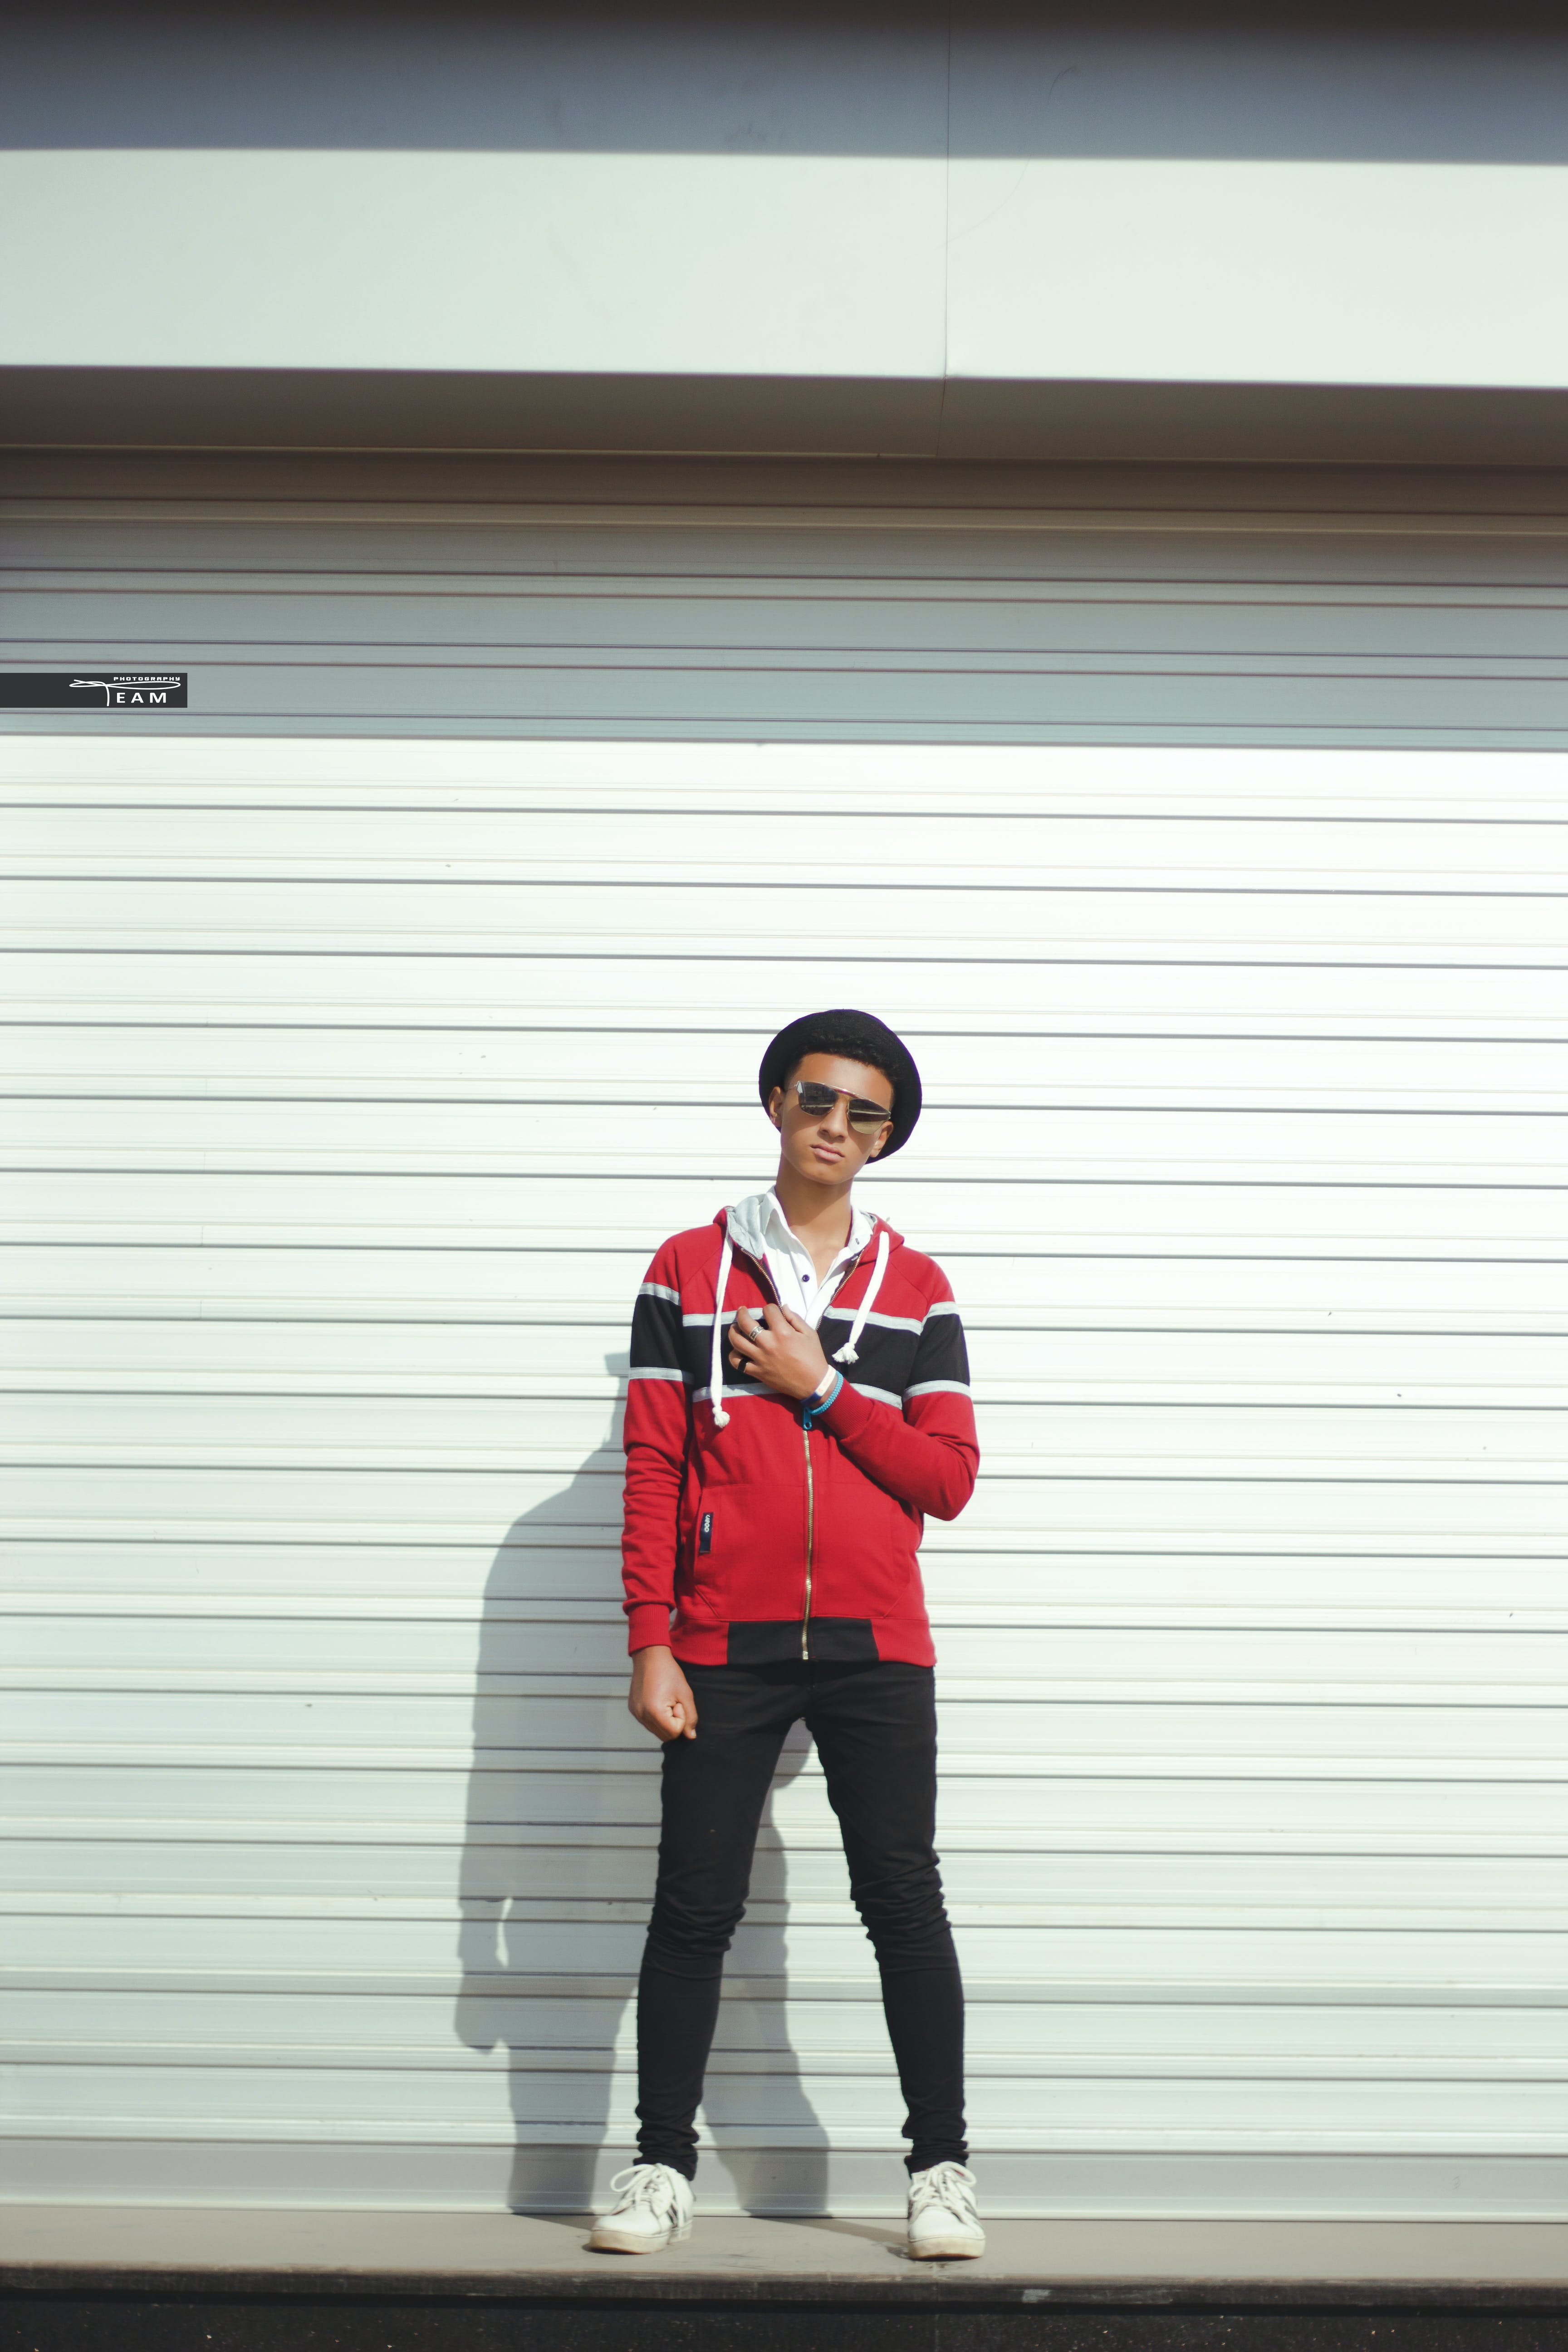 Man In Red And Black Zip-up Jacket And Black Pants With Black Hat